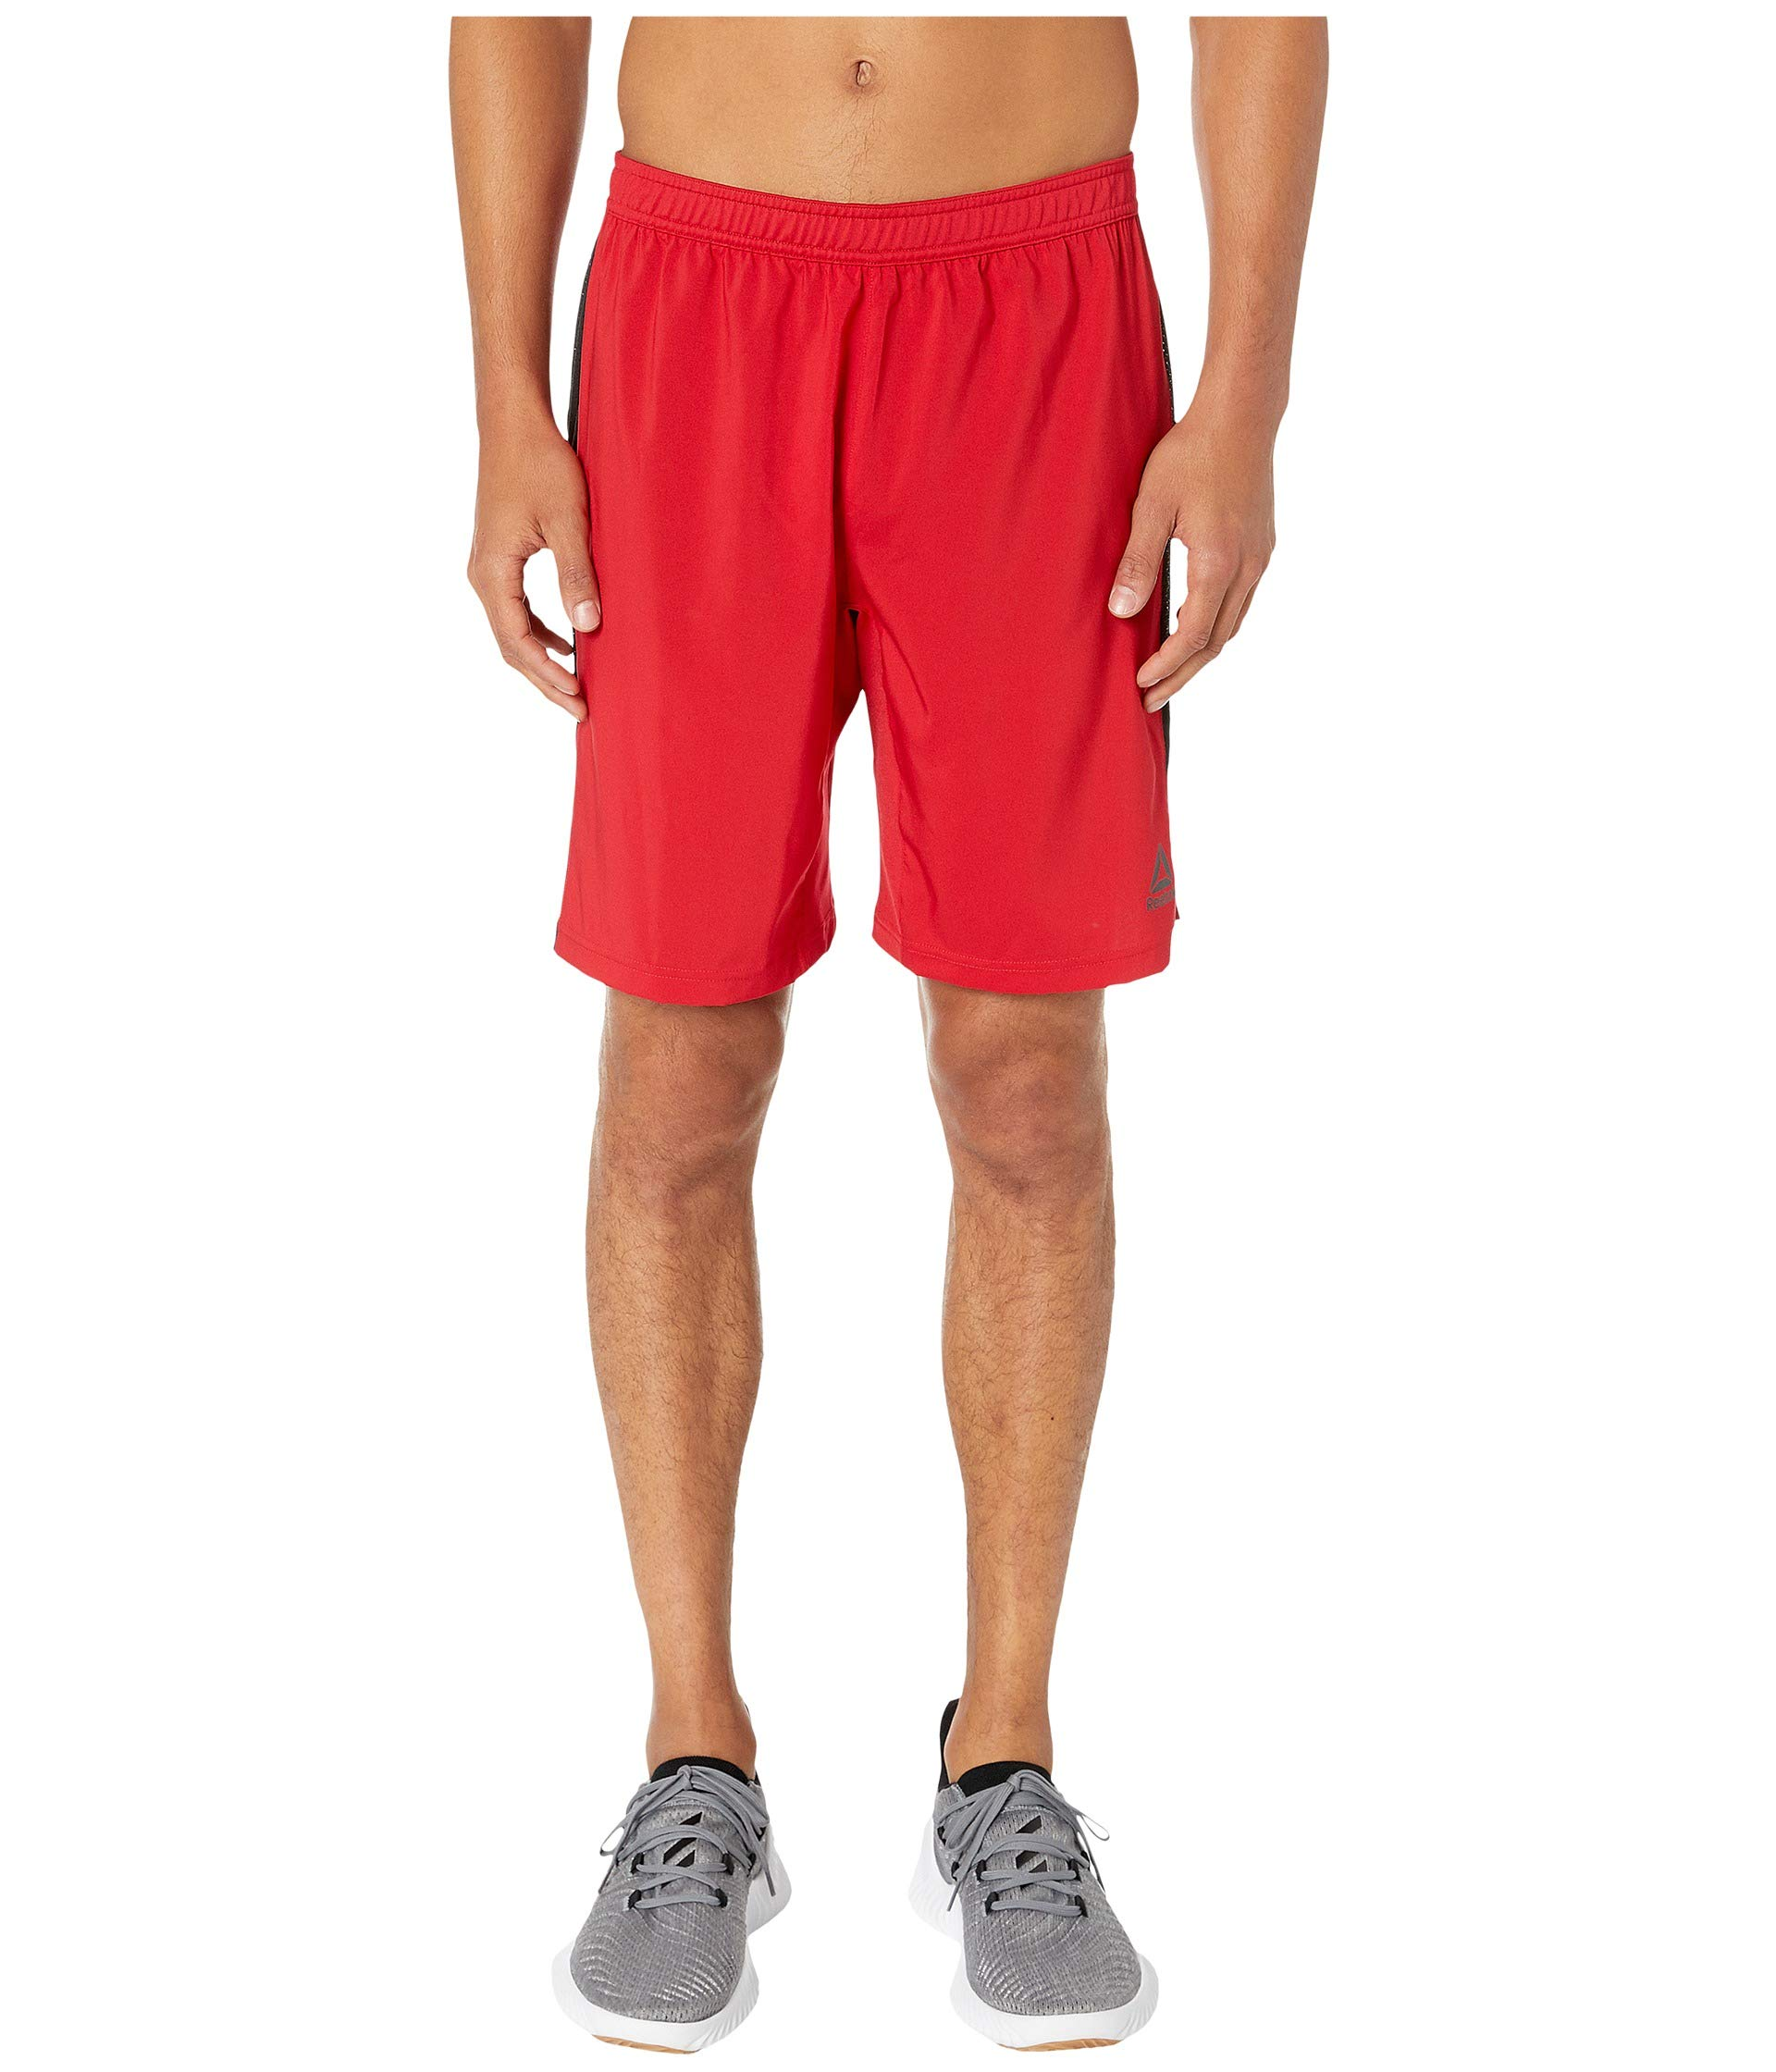 Reebok Perforated Woven Shorts, XX-Large, Excred by Reebok